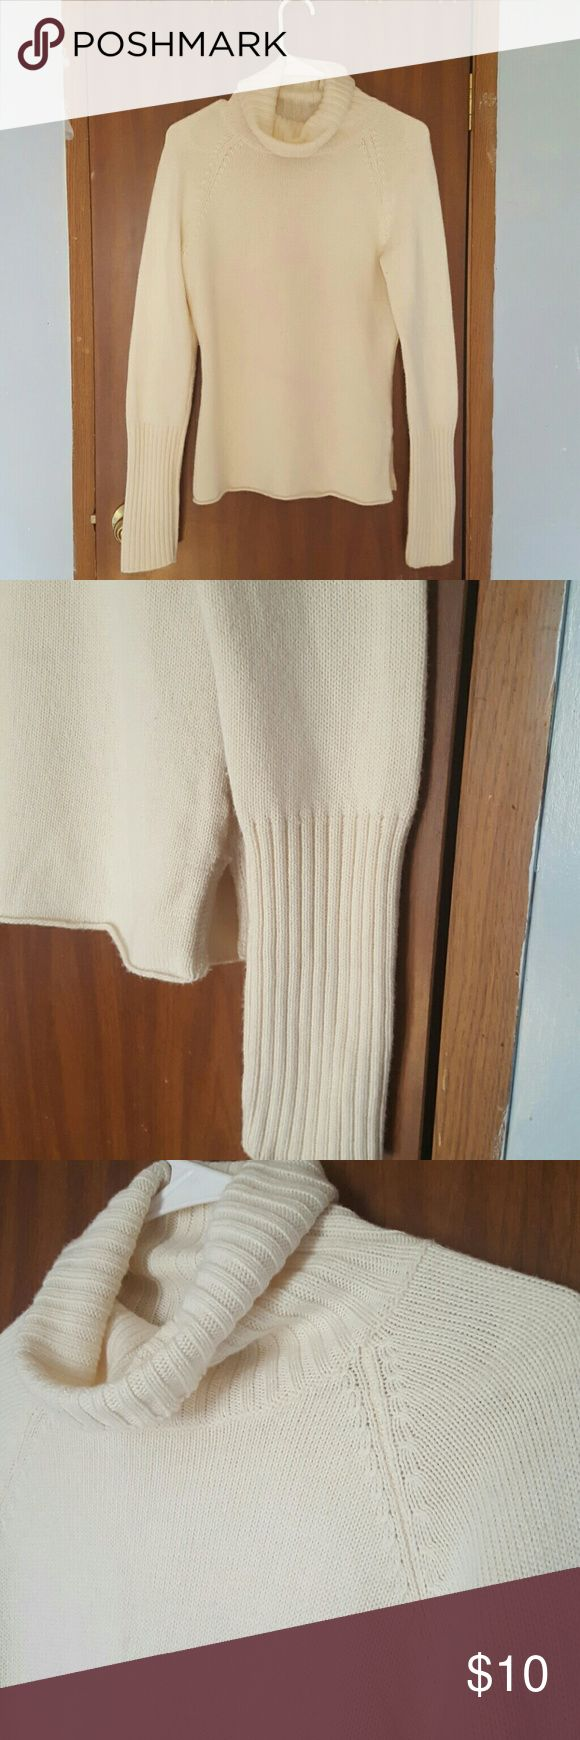 The Limited women's turtleneck sweater Medium Comfortable and cozy Women's turtleneck sweater. 2 small stains on front, hardly noticeable. Stains shown in last picture. Some piling under arms. Size Medium.   52% acrylic 48% Wool The Limited Sweaters Cowl & Turtlenecks